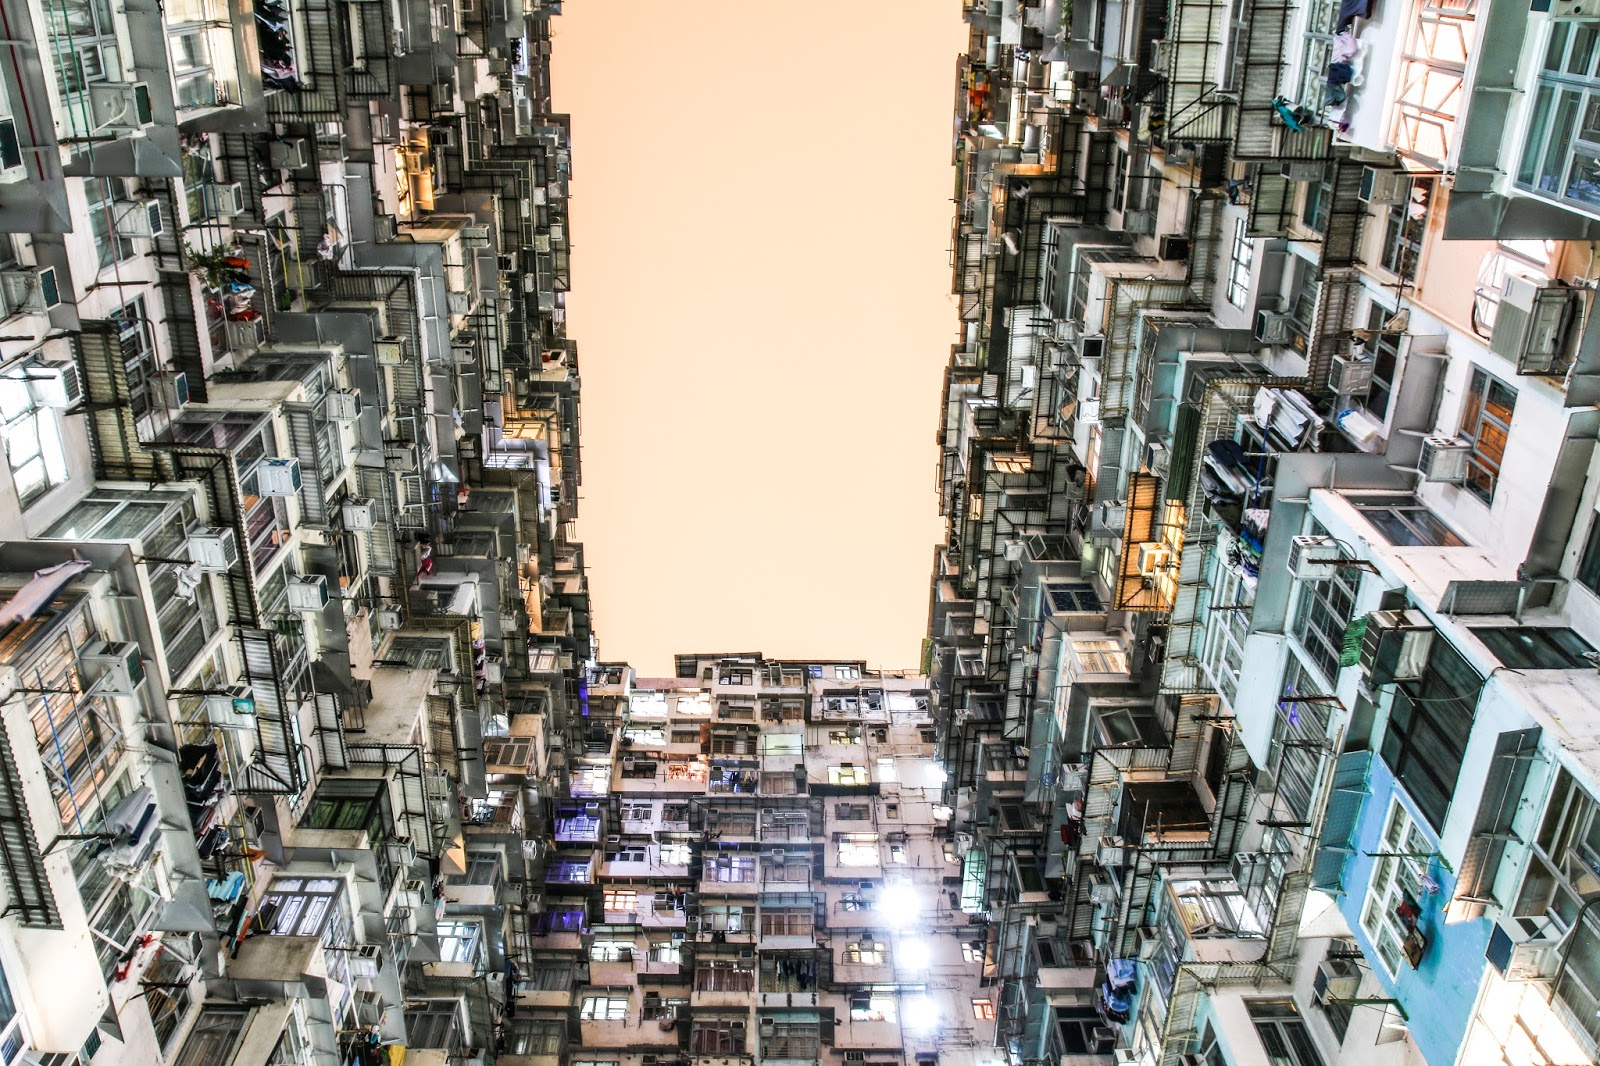 Montae Mansion has the most incredible architecture and calling of all the photographers to come see this densely populated place | 3 Day Travel Guide in Hong Kong